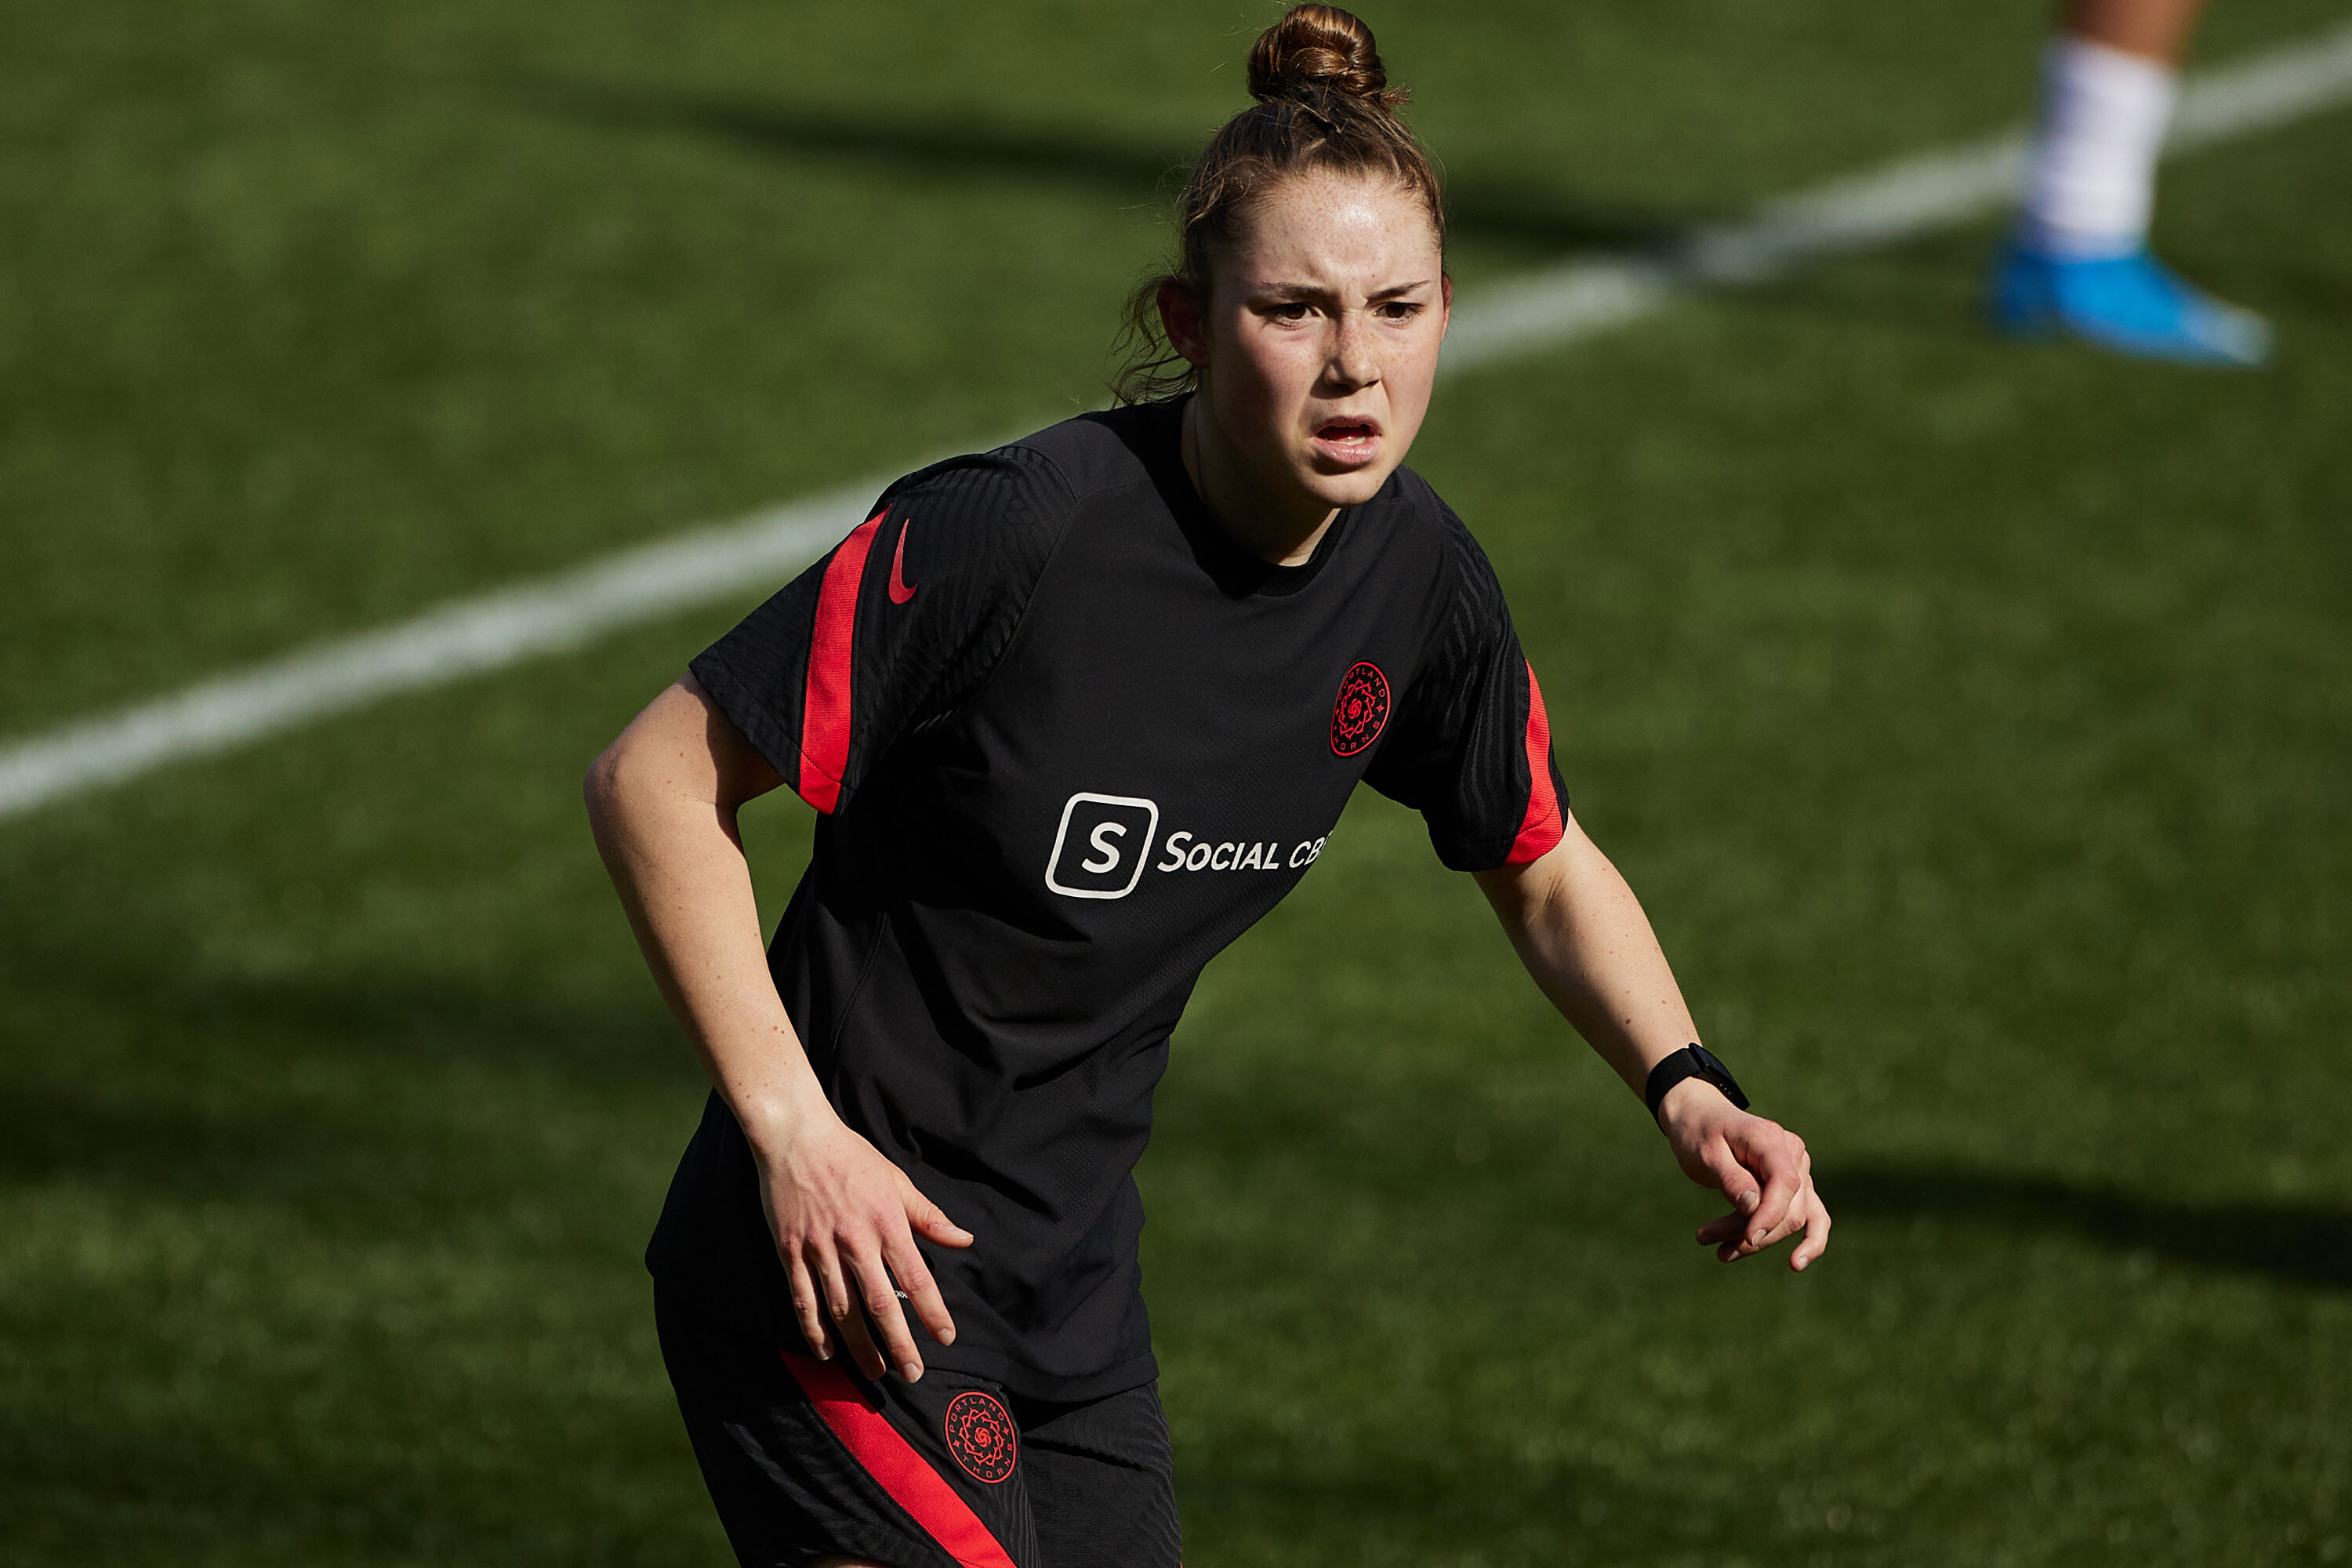 Olivia Moultrie, 15, makes history by signing with NWSL's Portland Thorns